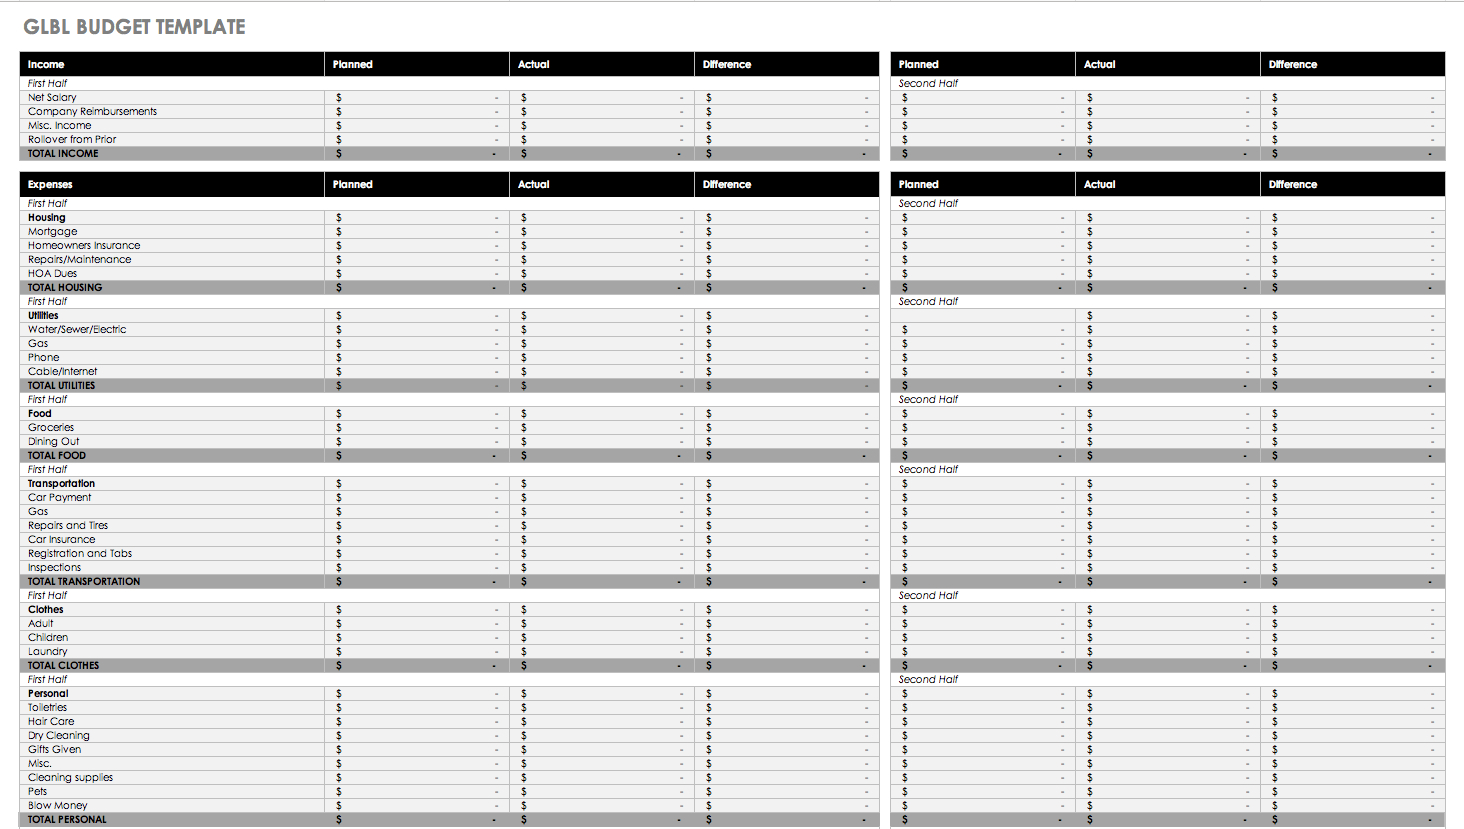 Spreadsheet Gifts With Regard To Free Budget Templates In Excel For Any Use